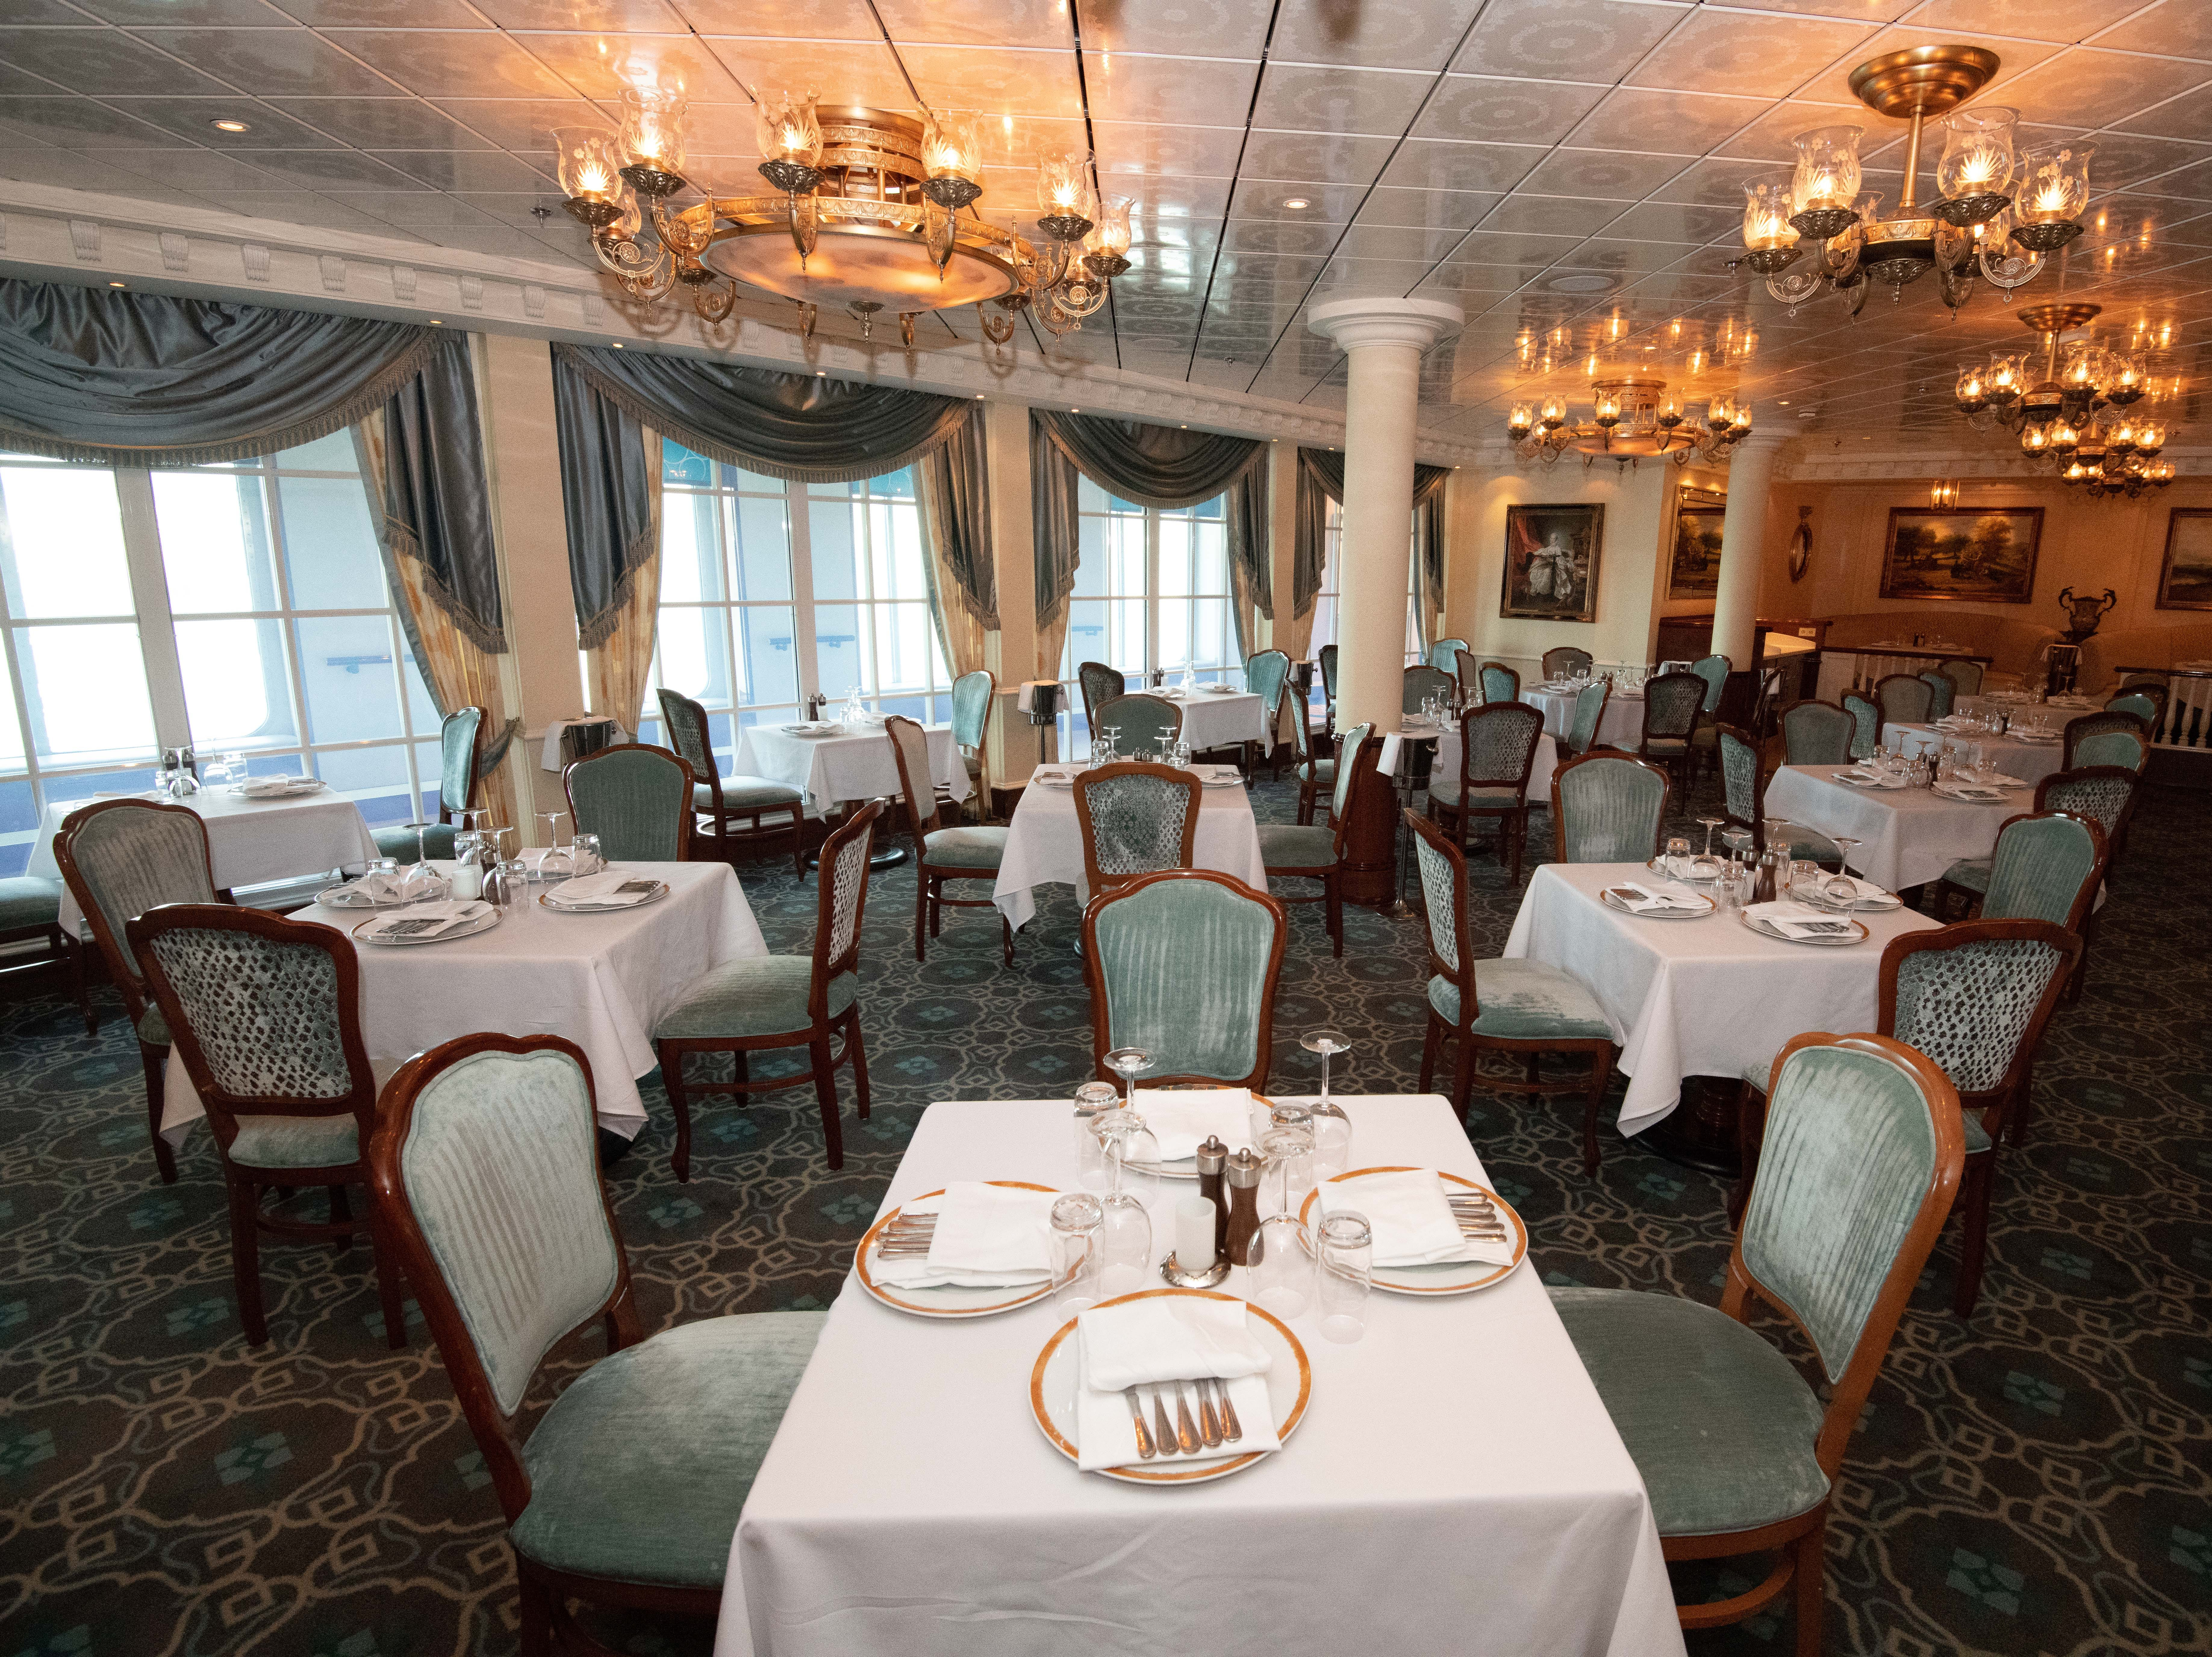 Located on Deck 5 and open for dinner only, Jefferson's Bistro offers seating for 84 people.